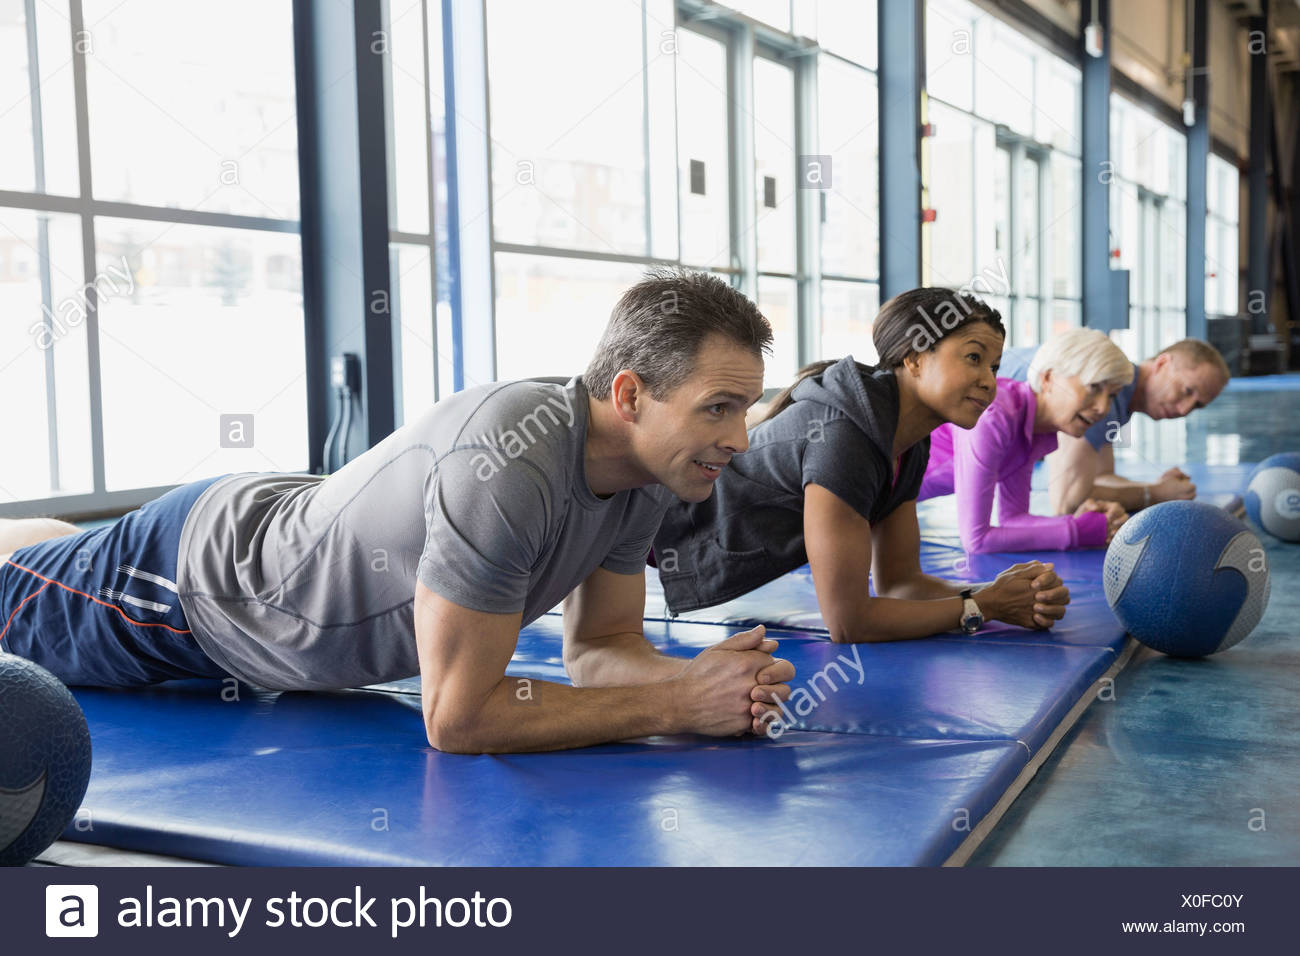 Group doing planks in exercise class at gym - Stock Image